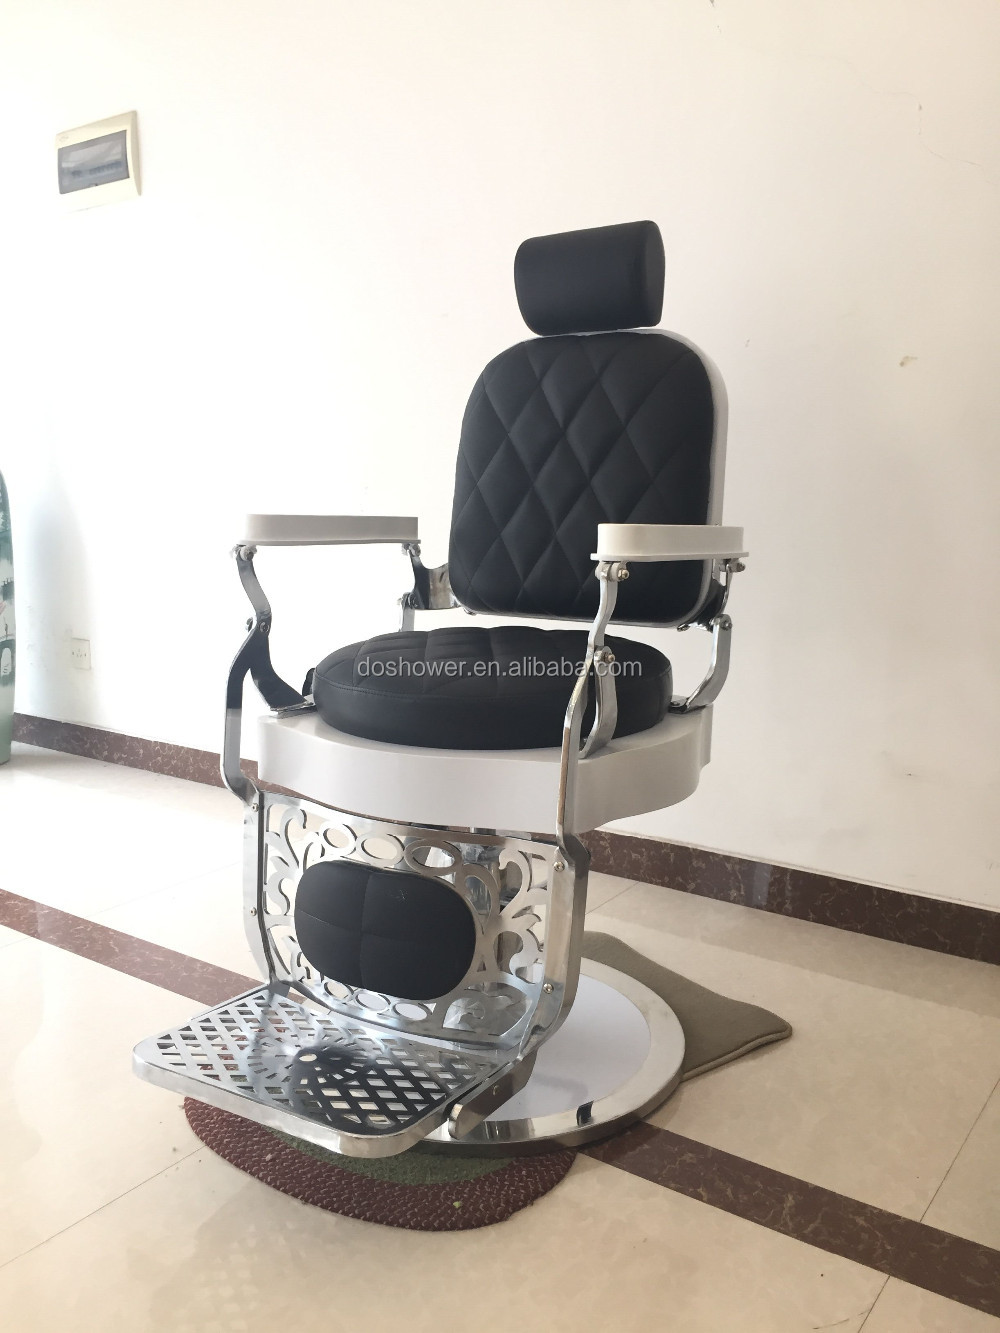 Doshower Second Hand Barber Chair For Sale Buy Second Hand Barber